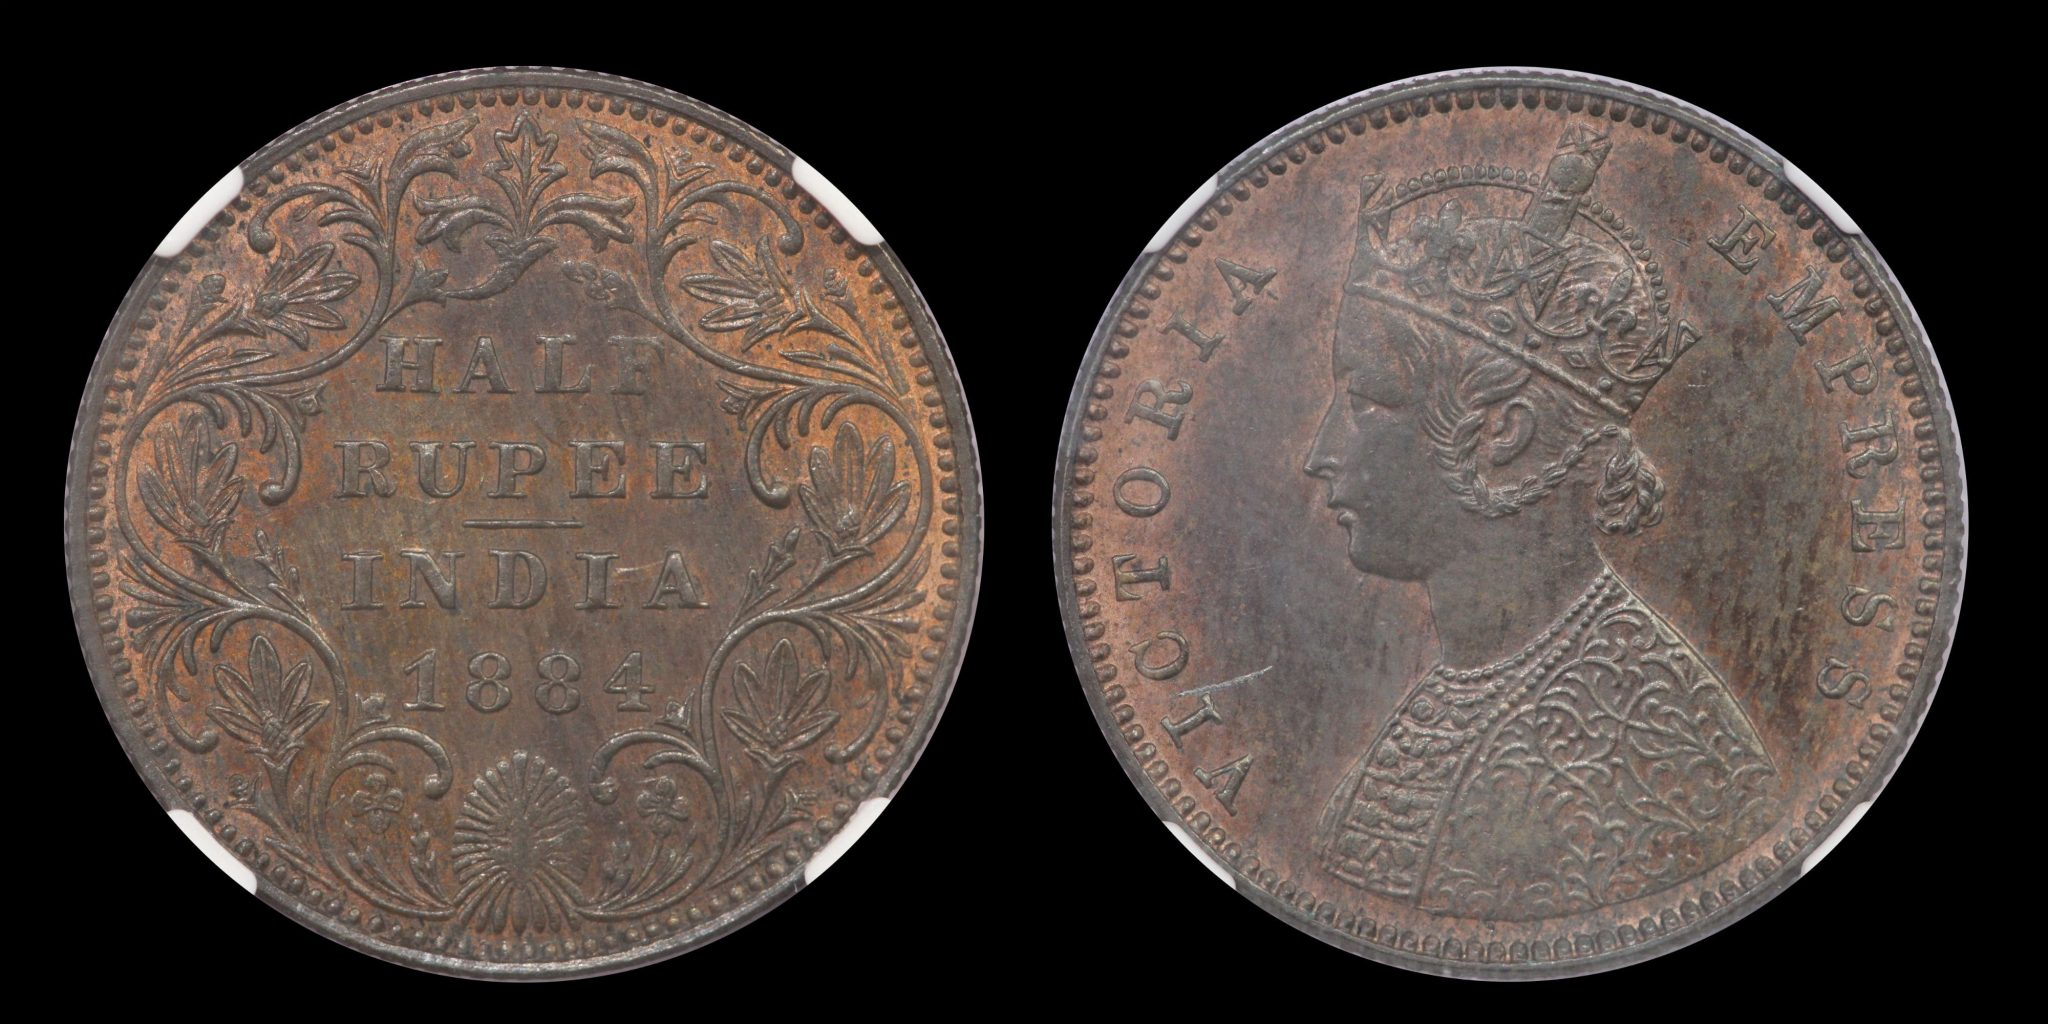 1884-Half-Copper-MS62-min